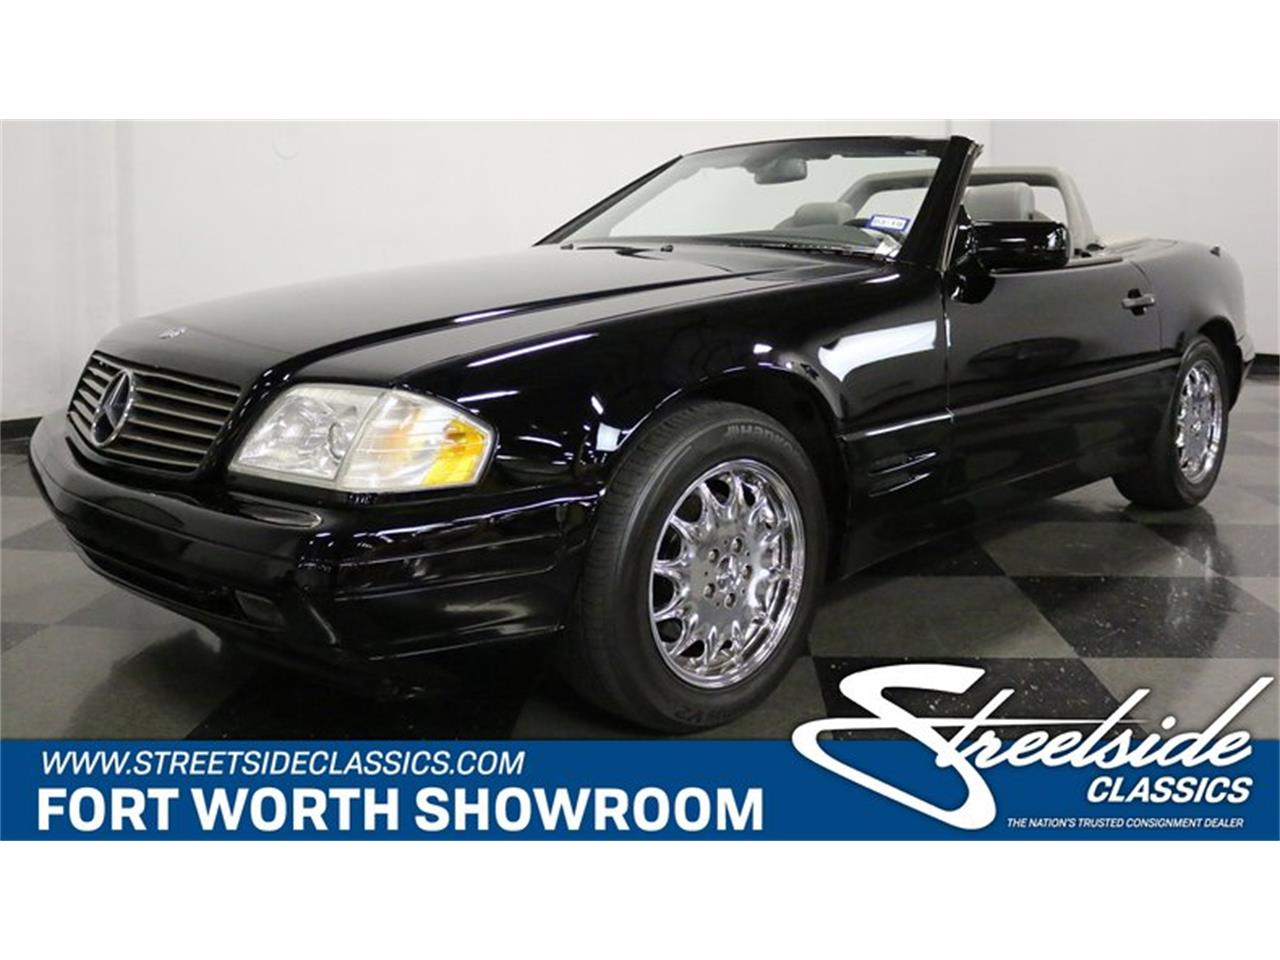 For Sale: 1998 Mercedes-Benz SL500 in Ft Worth, Texas